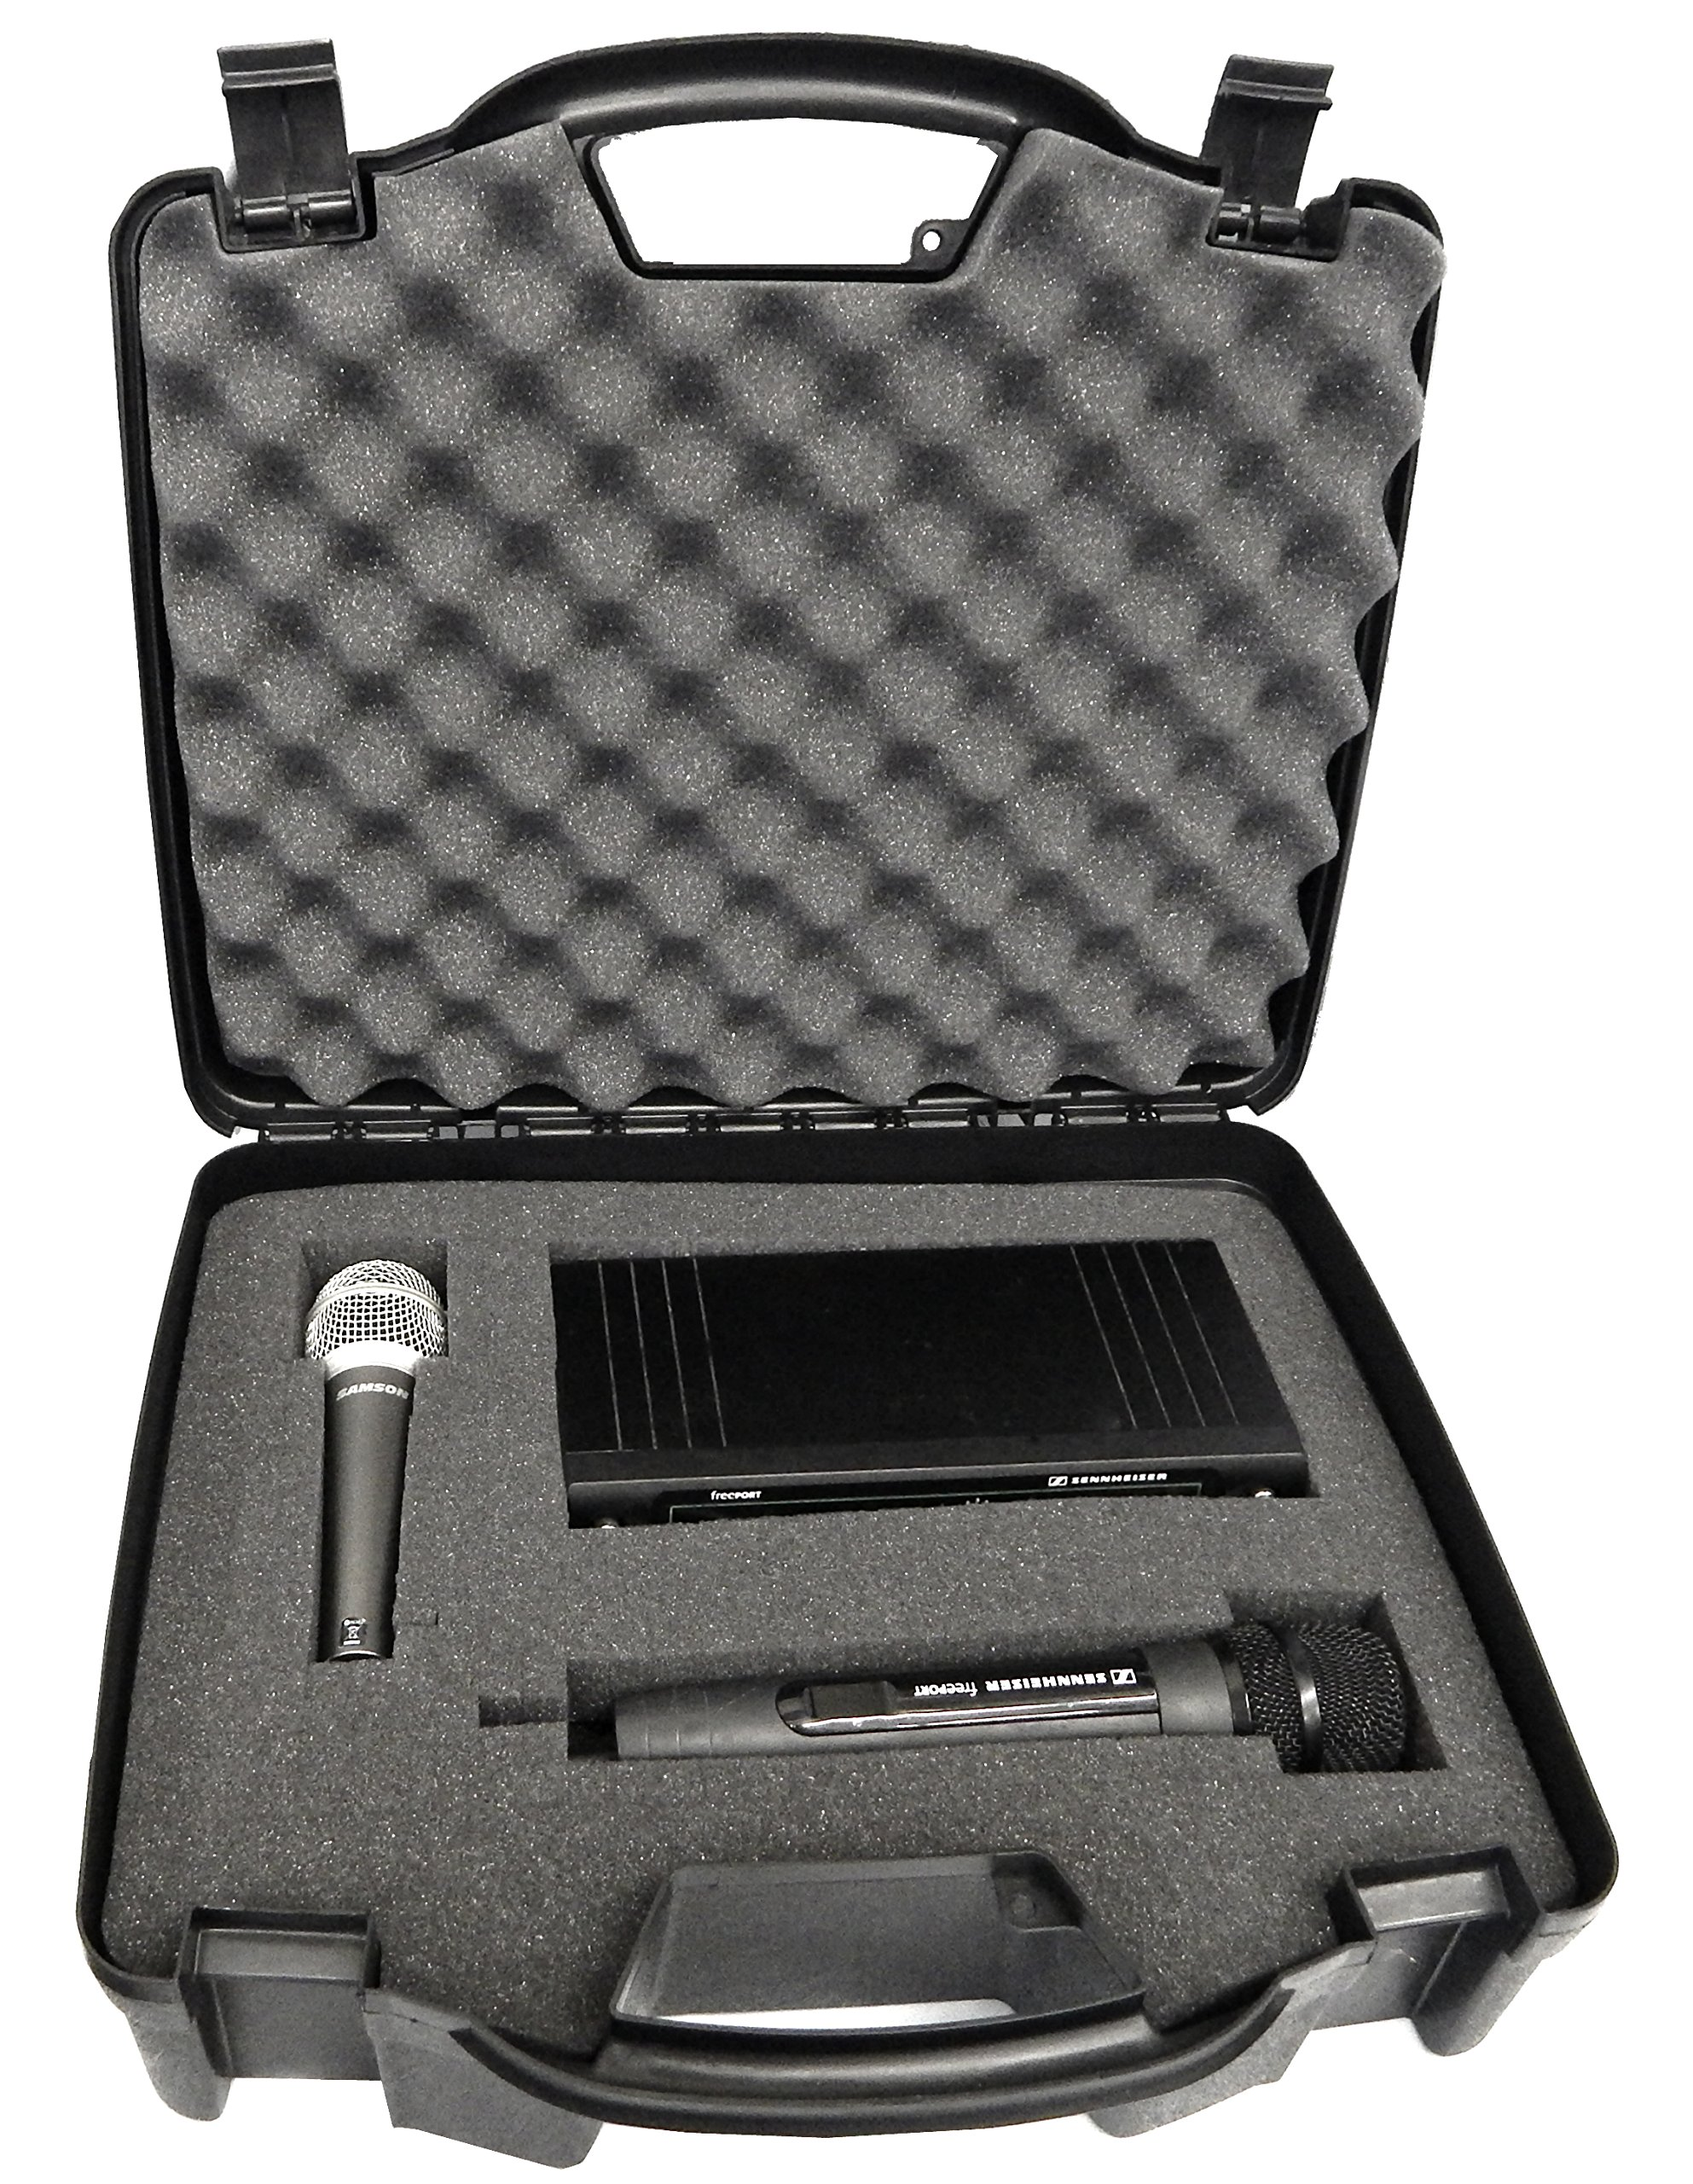 STUDIOCASE Wireless Microphone System Hard Case w/ Foam - Fits Sennheiser , Shure , Audio-Technica , Nady , VocoPro , AKG With Receiver , Body Transmitter , UHF Headset , Lavalier and Handheld Mics by CASEMATIX